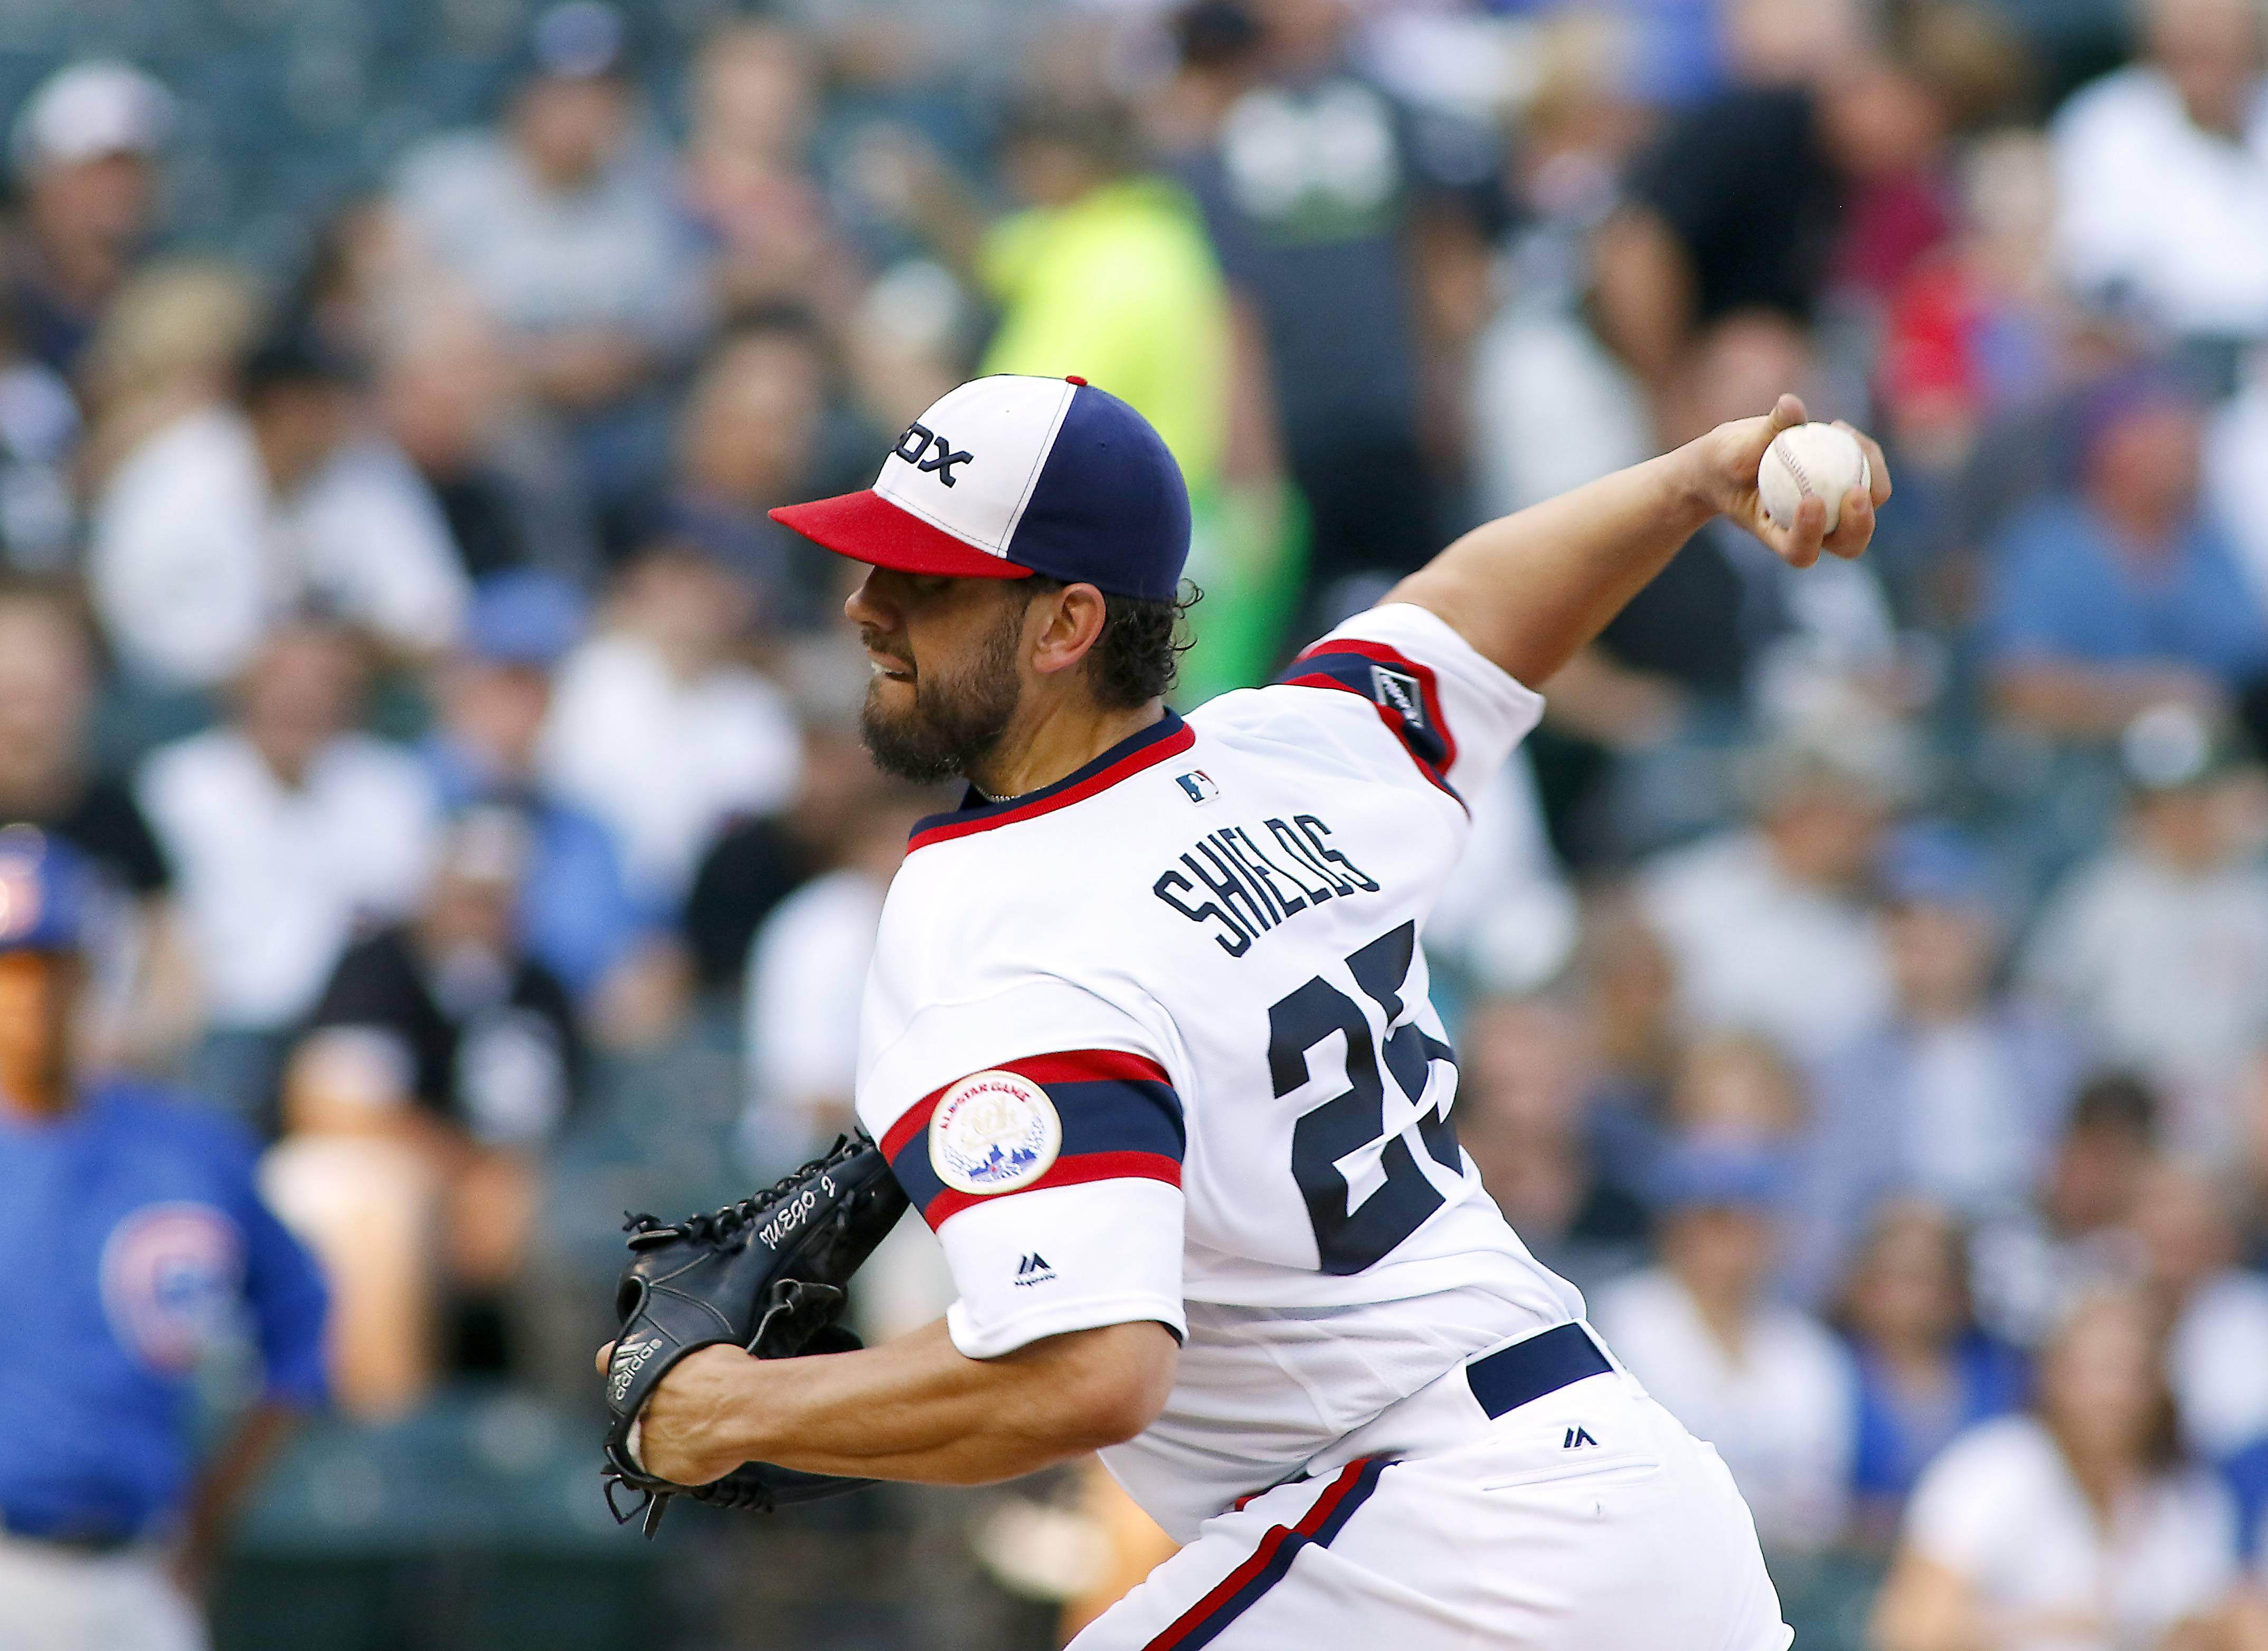 Brian Hill/bhill@dailyherald.comChicago White Sox starting pitcher James Shields (25) in Game 2 of their Crosstown Cup series at U.S. Cellular field on Tuesday, July 26.